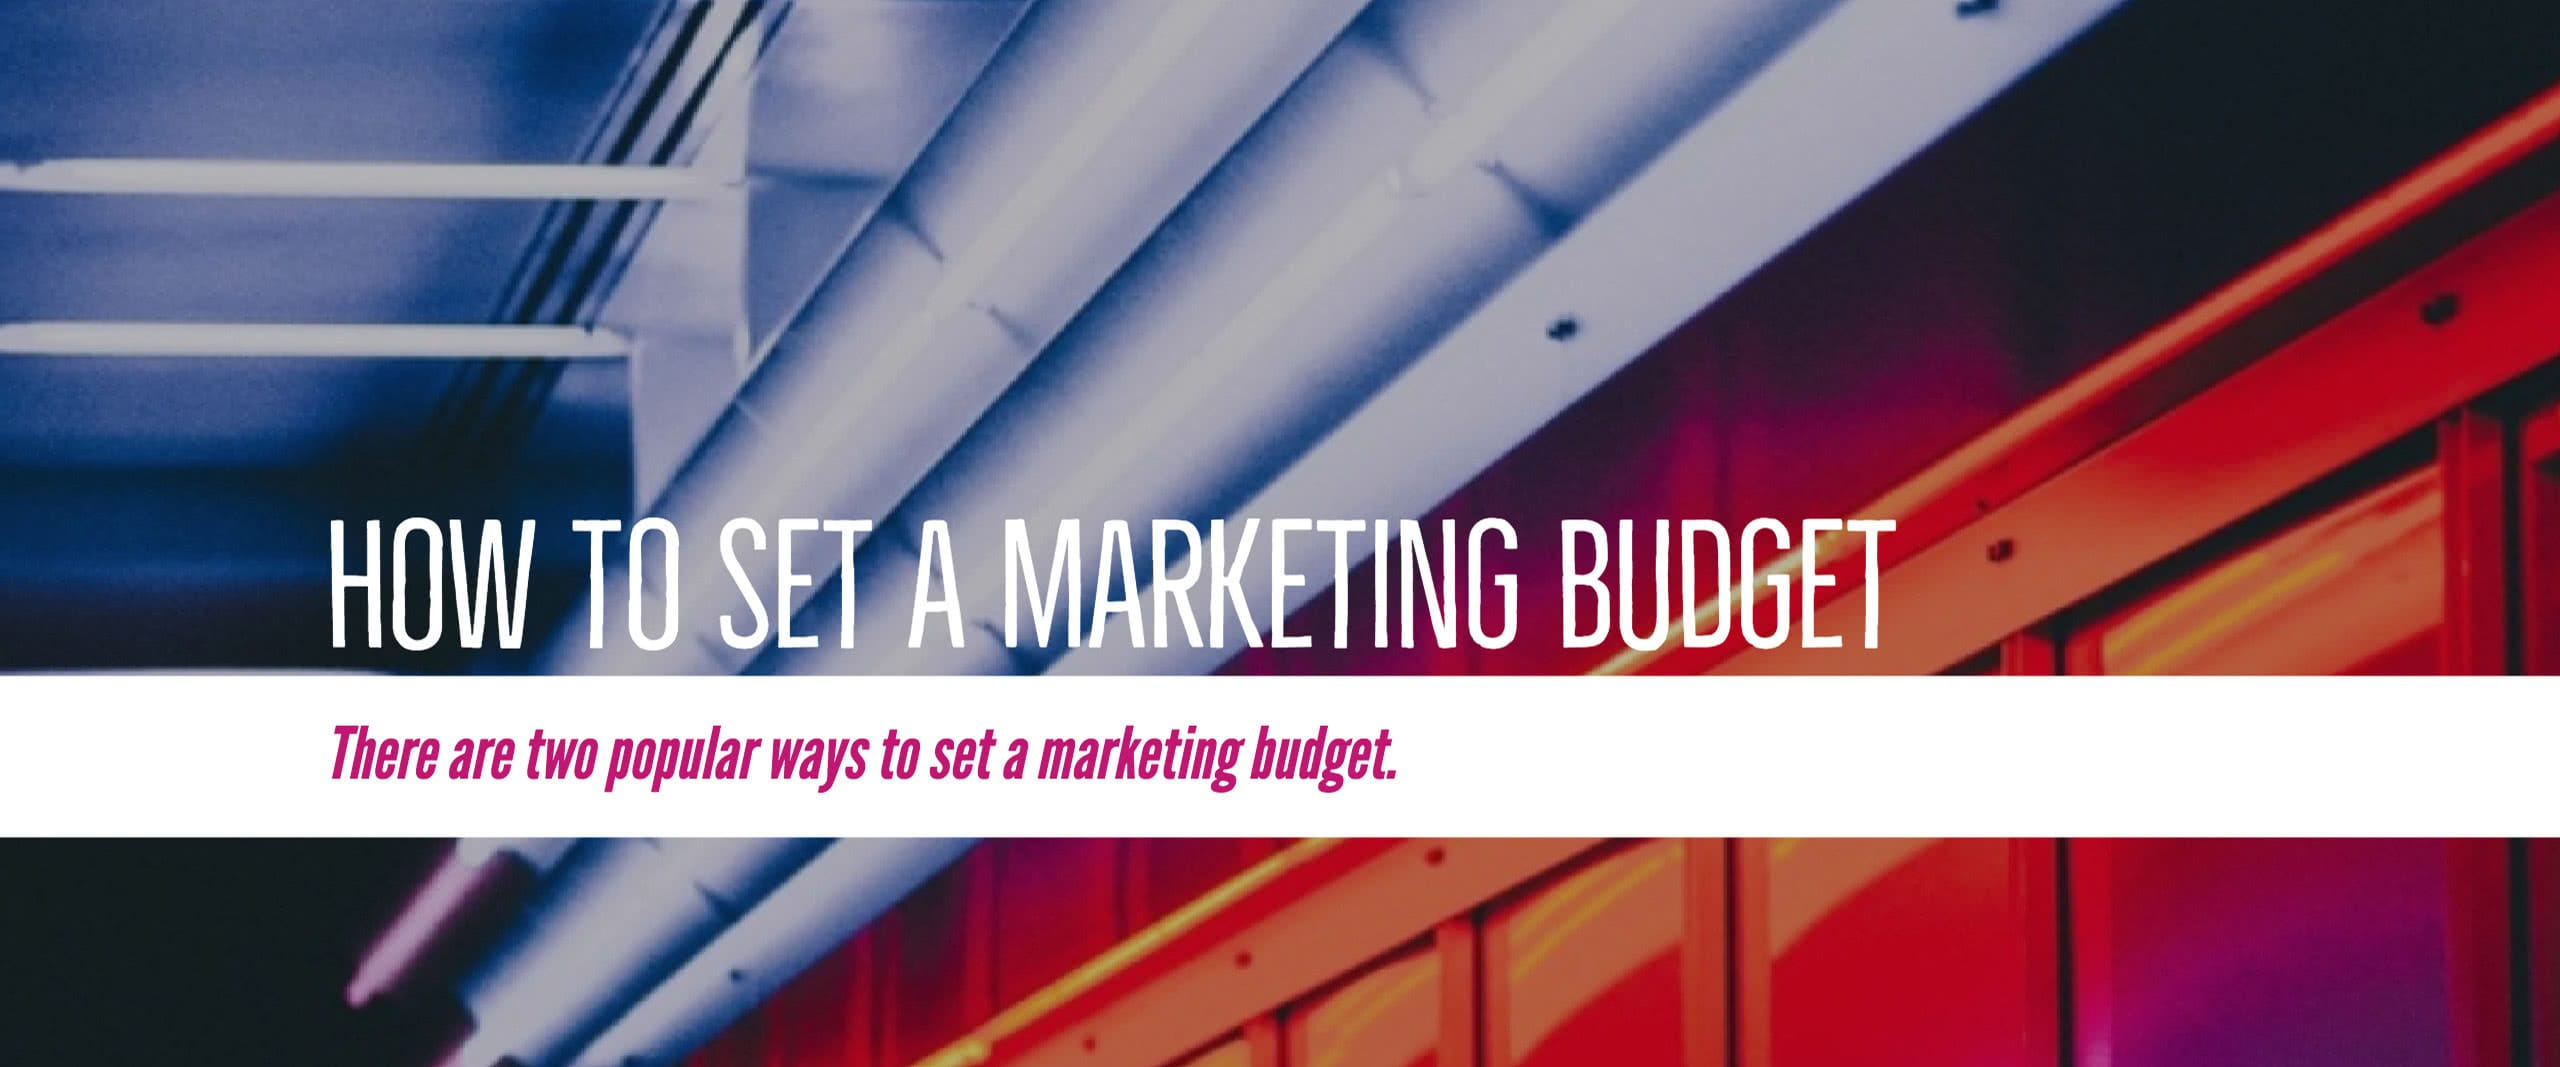 How to set a marketing budget